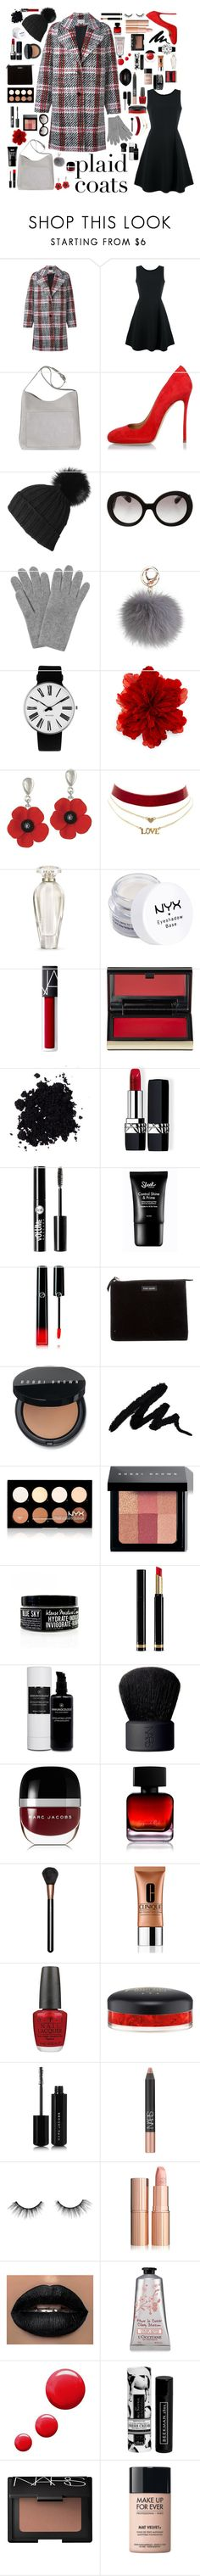 """""""Plaid"""" by asegly ❤ liked on Polyvore featuring Carven, Emporio Armani, Dsquared2, Black, Prada, L.K.Bennett, Rosendahl, Gucci, Charlotte Russe and Victoria's Secret"""